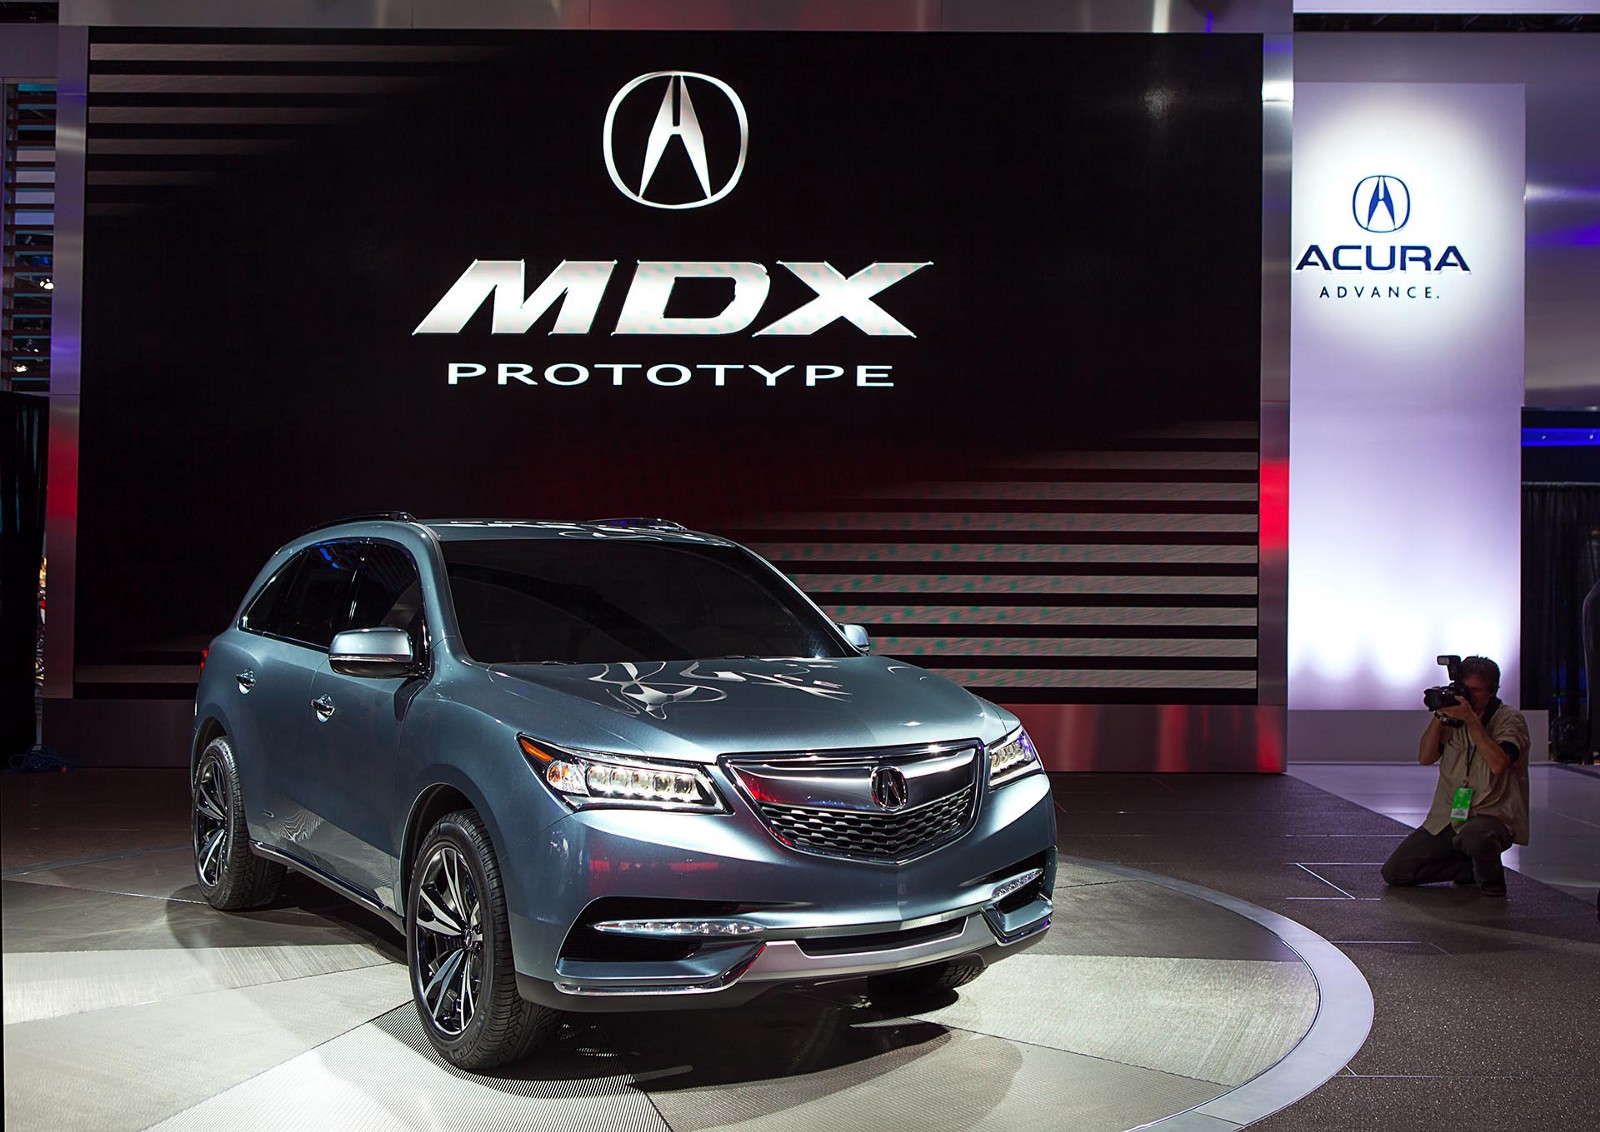 New Features And Tech Of The 2016 Acura Mdx